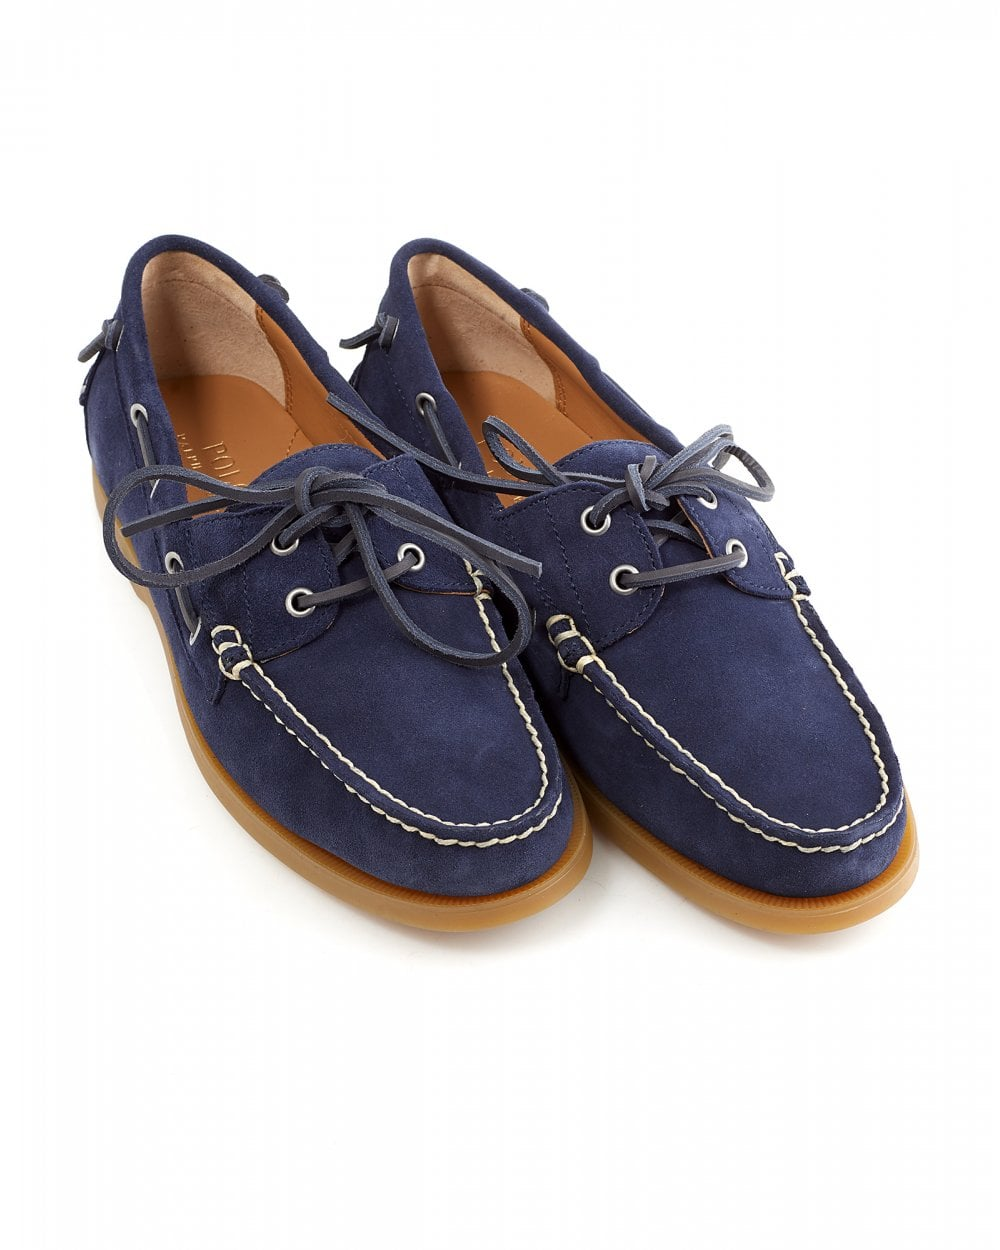 1f9c2ae8b Ralph Lauren Mens Classic Suede Newport Navy Blue Boat Shoes